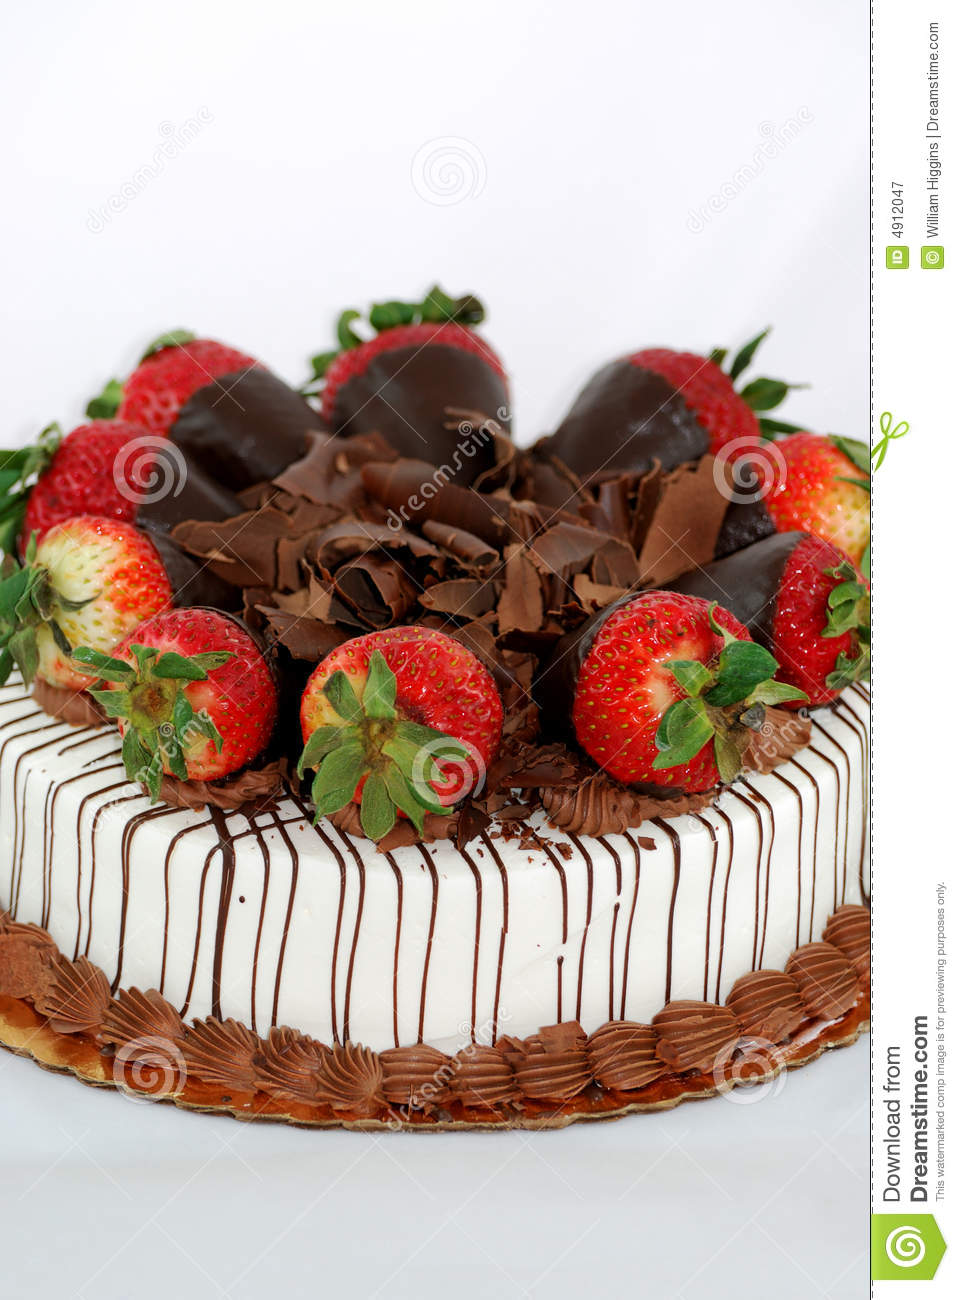 Vanilla Cake With Strawberries Royalty Free Stock